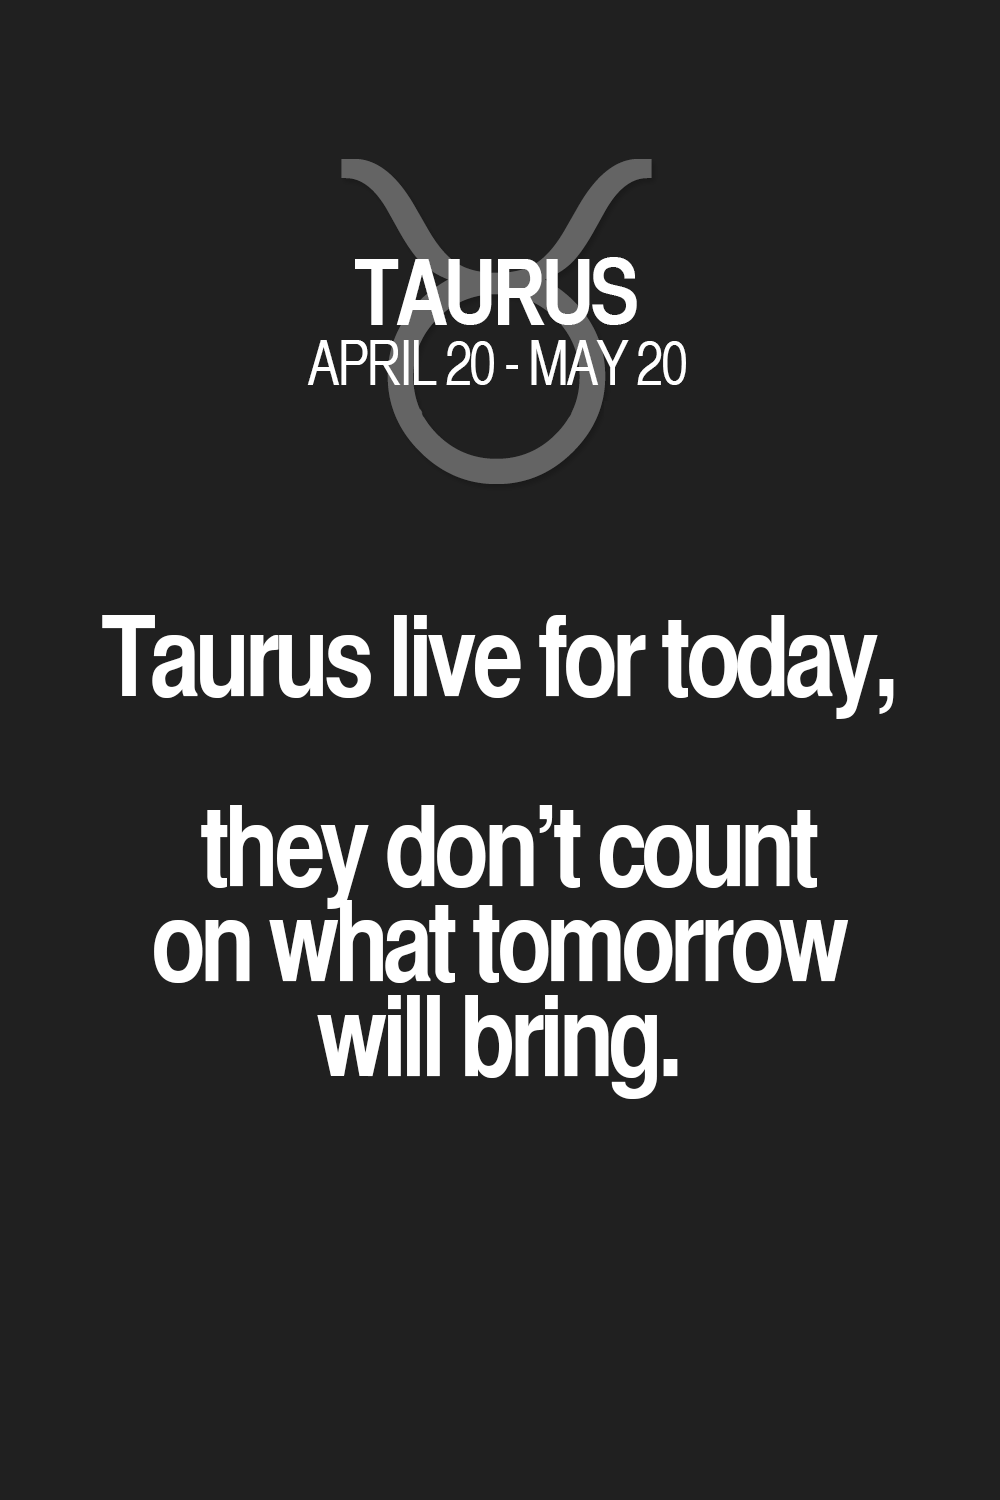 Live For Today Quotes Taurus Live For Today They Don't Count On What Tomorrow Will